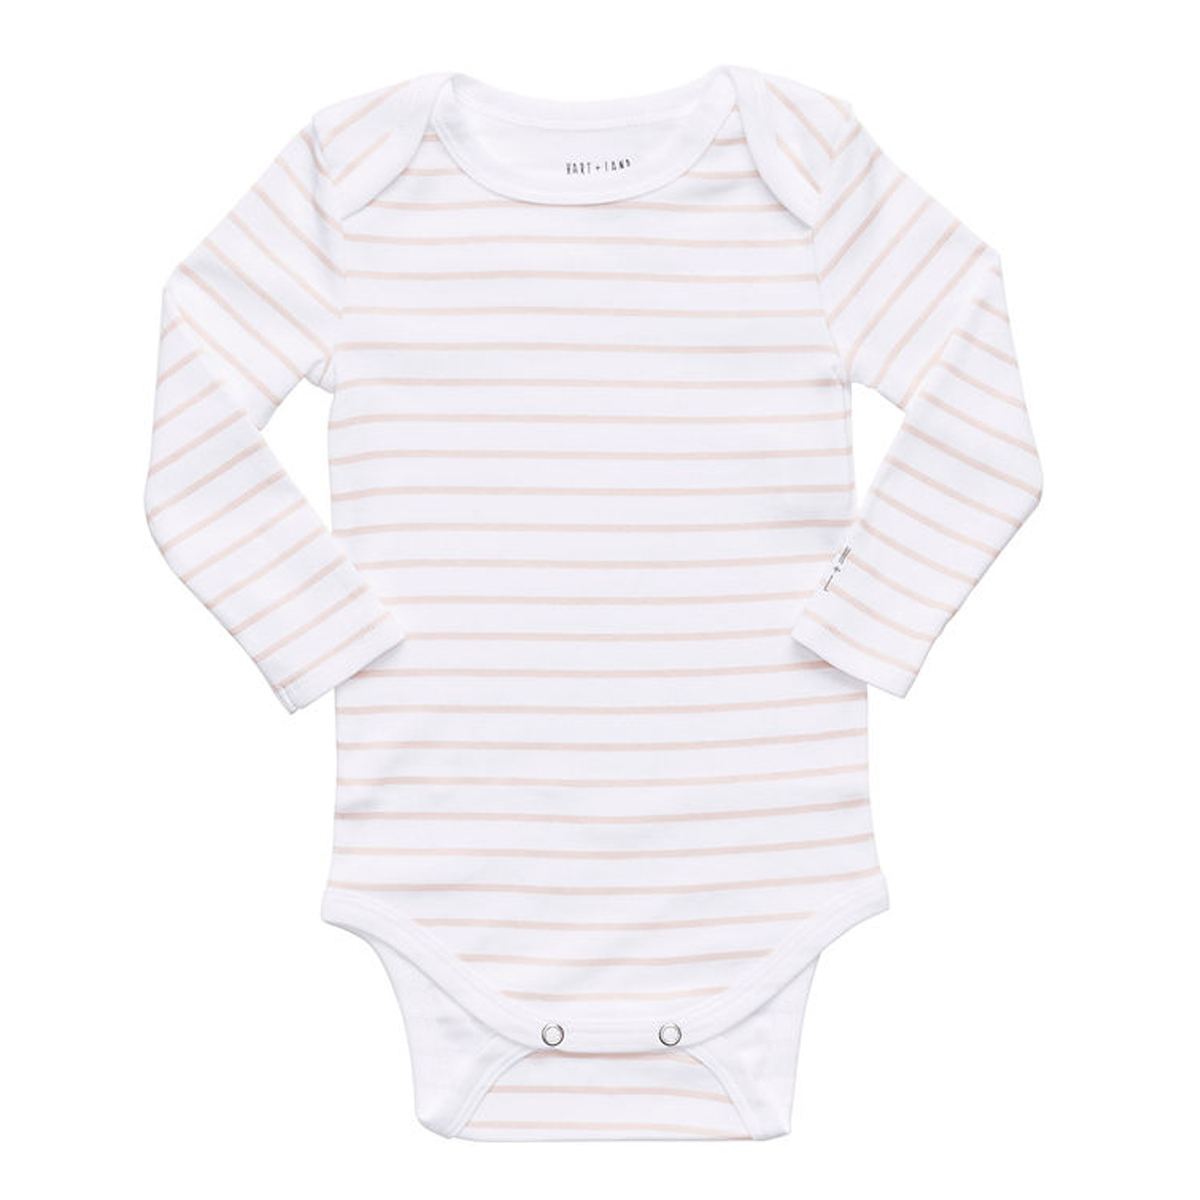 Hart + Land Long Sleeve Bodysuit in Sepia Rose Stripe